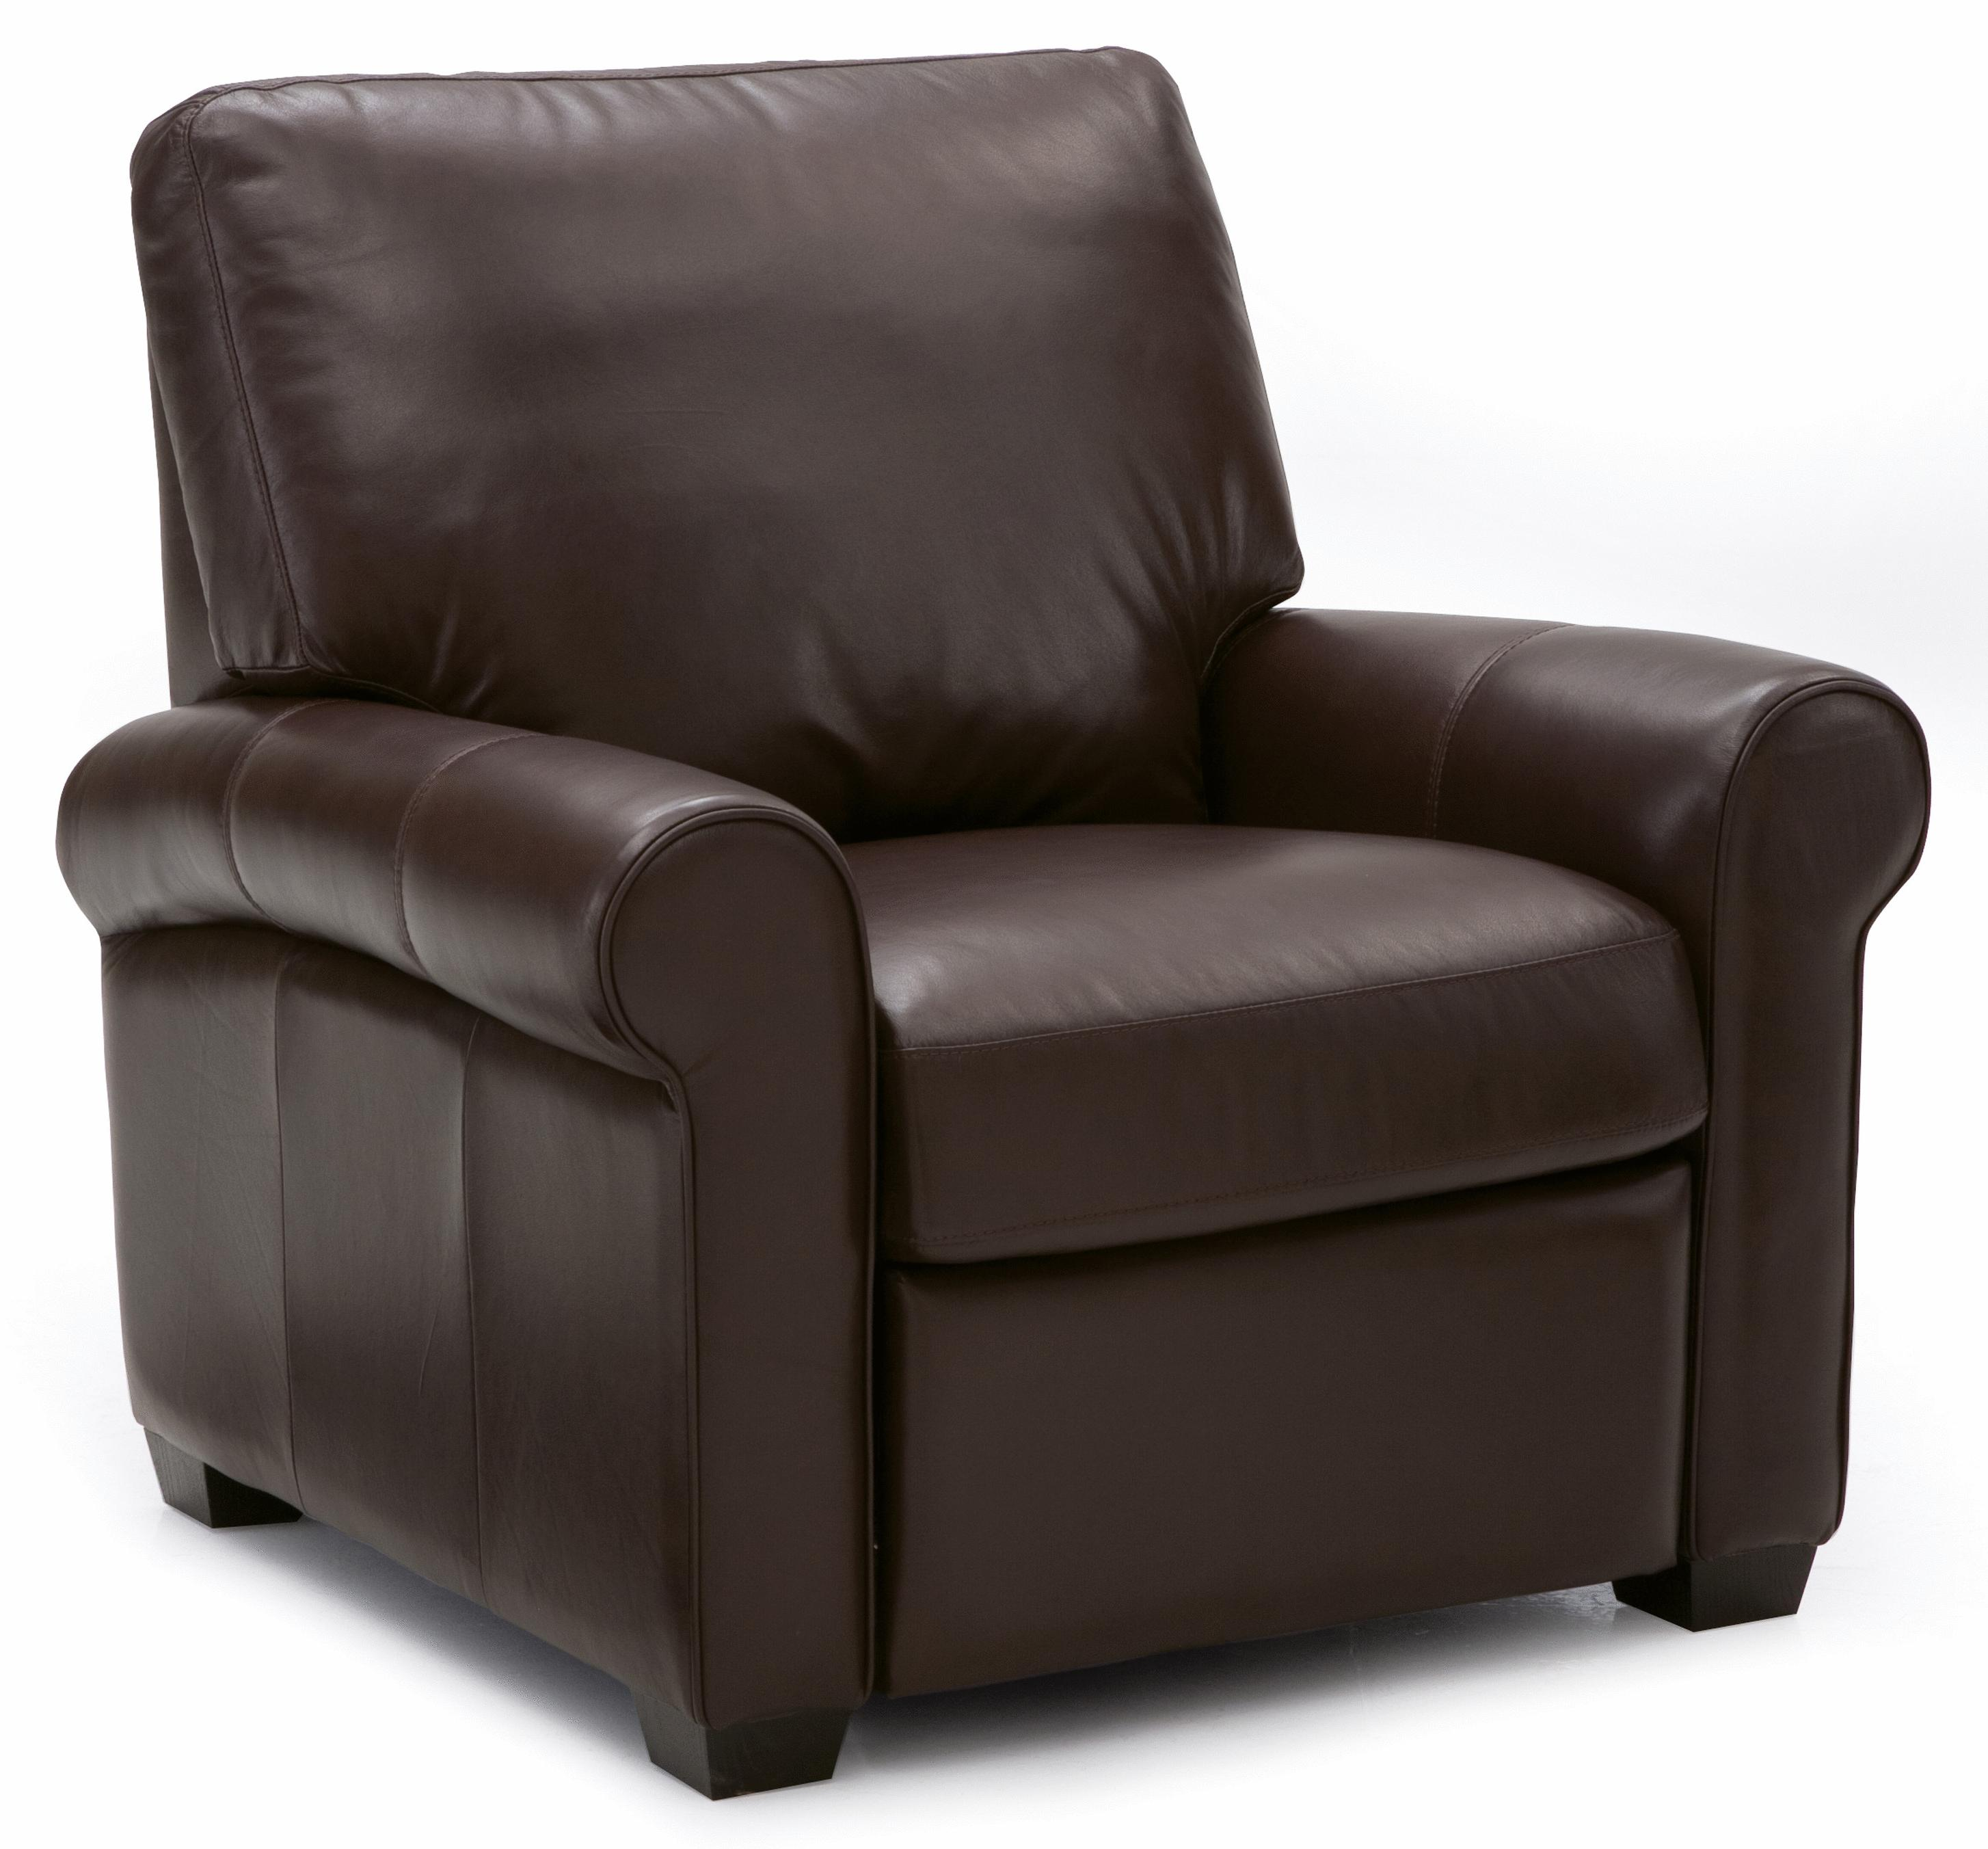 Chair Feet Palliser Magnum Transitional Pushback Chair With Sock Arms